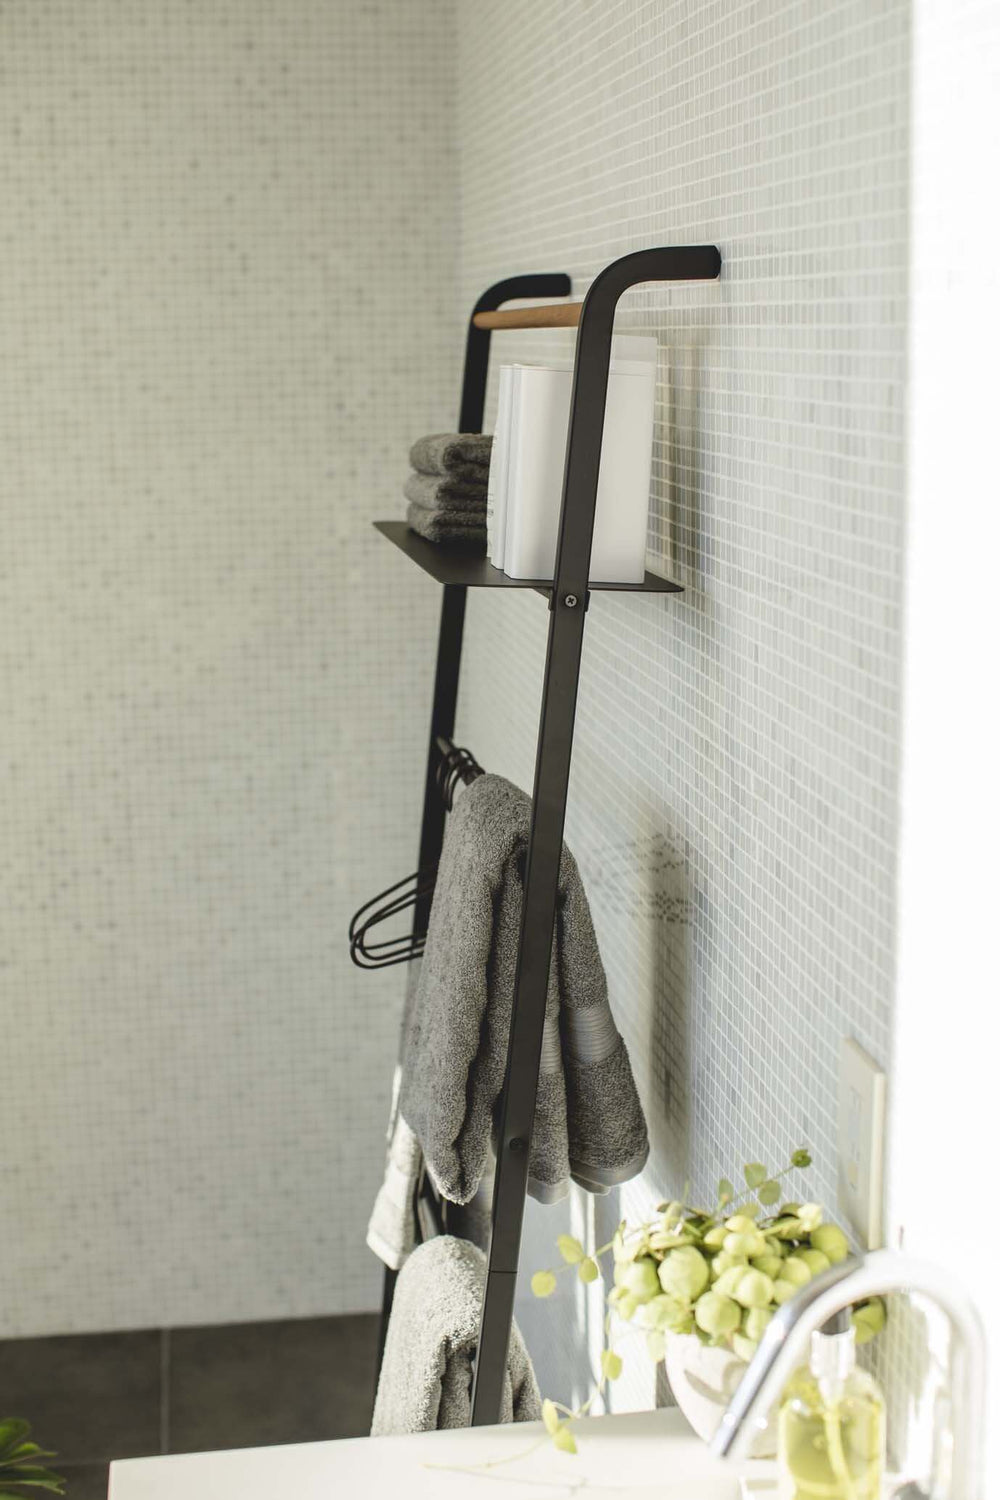 Yamazaki Leaning Ladder With Shelf